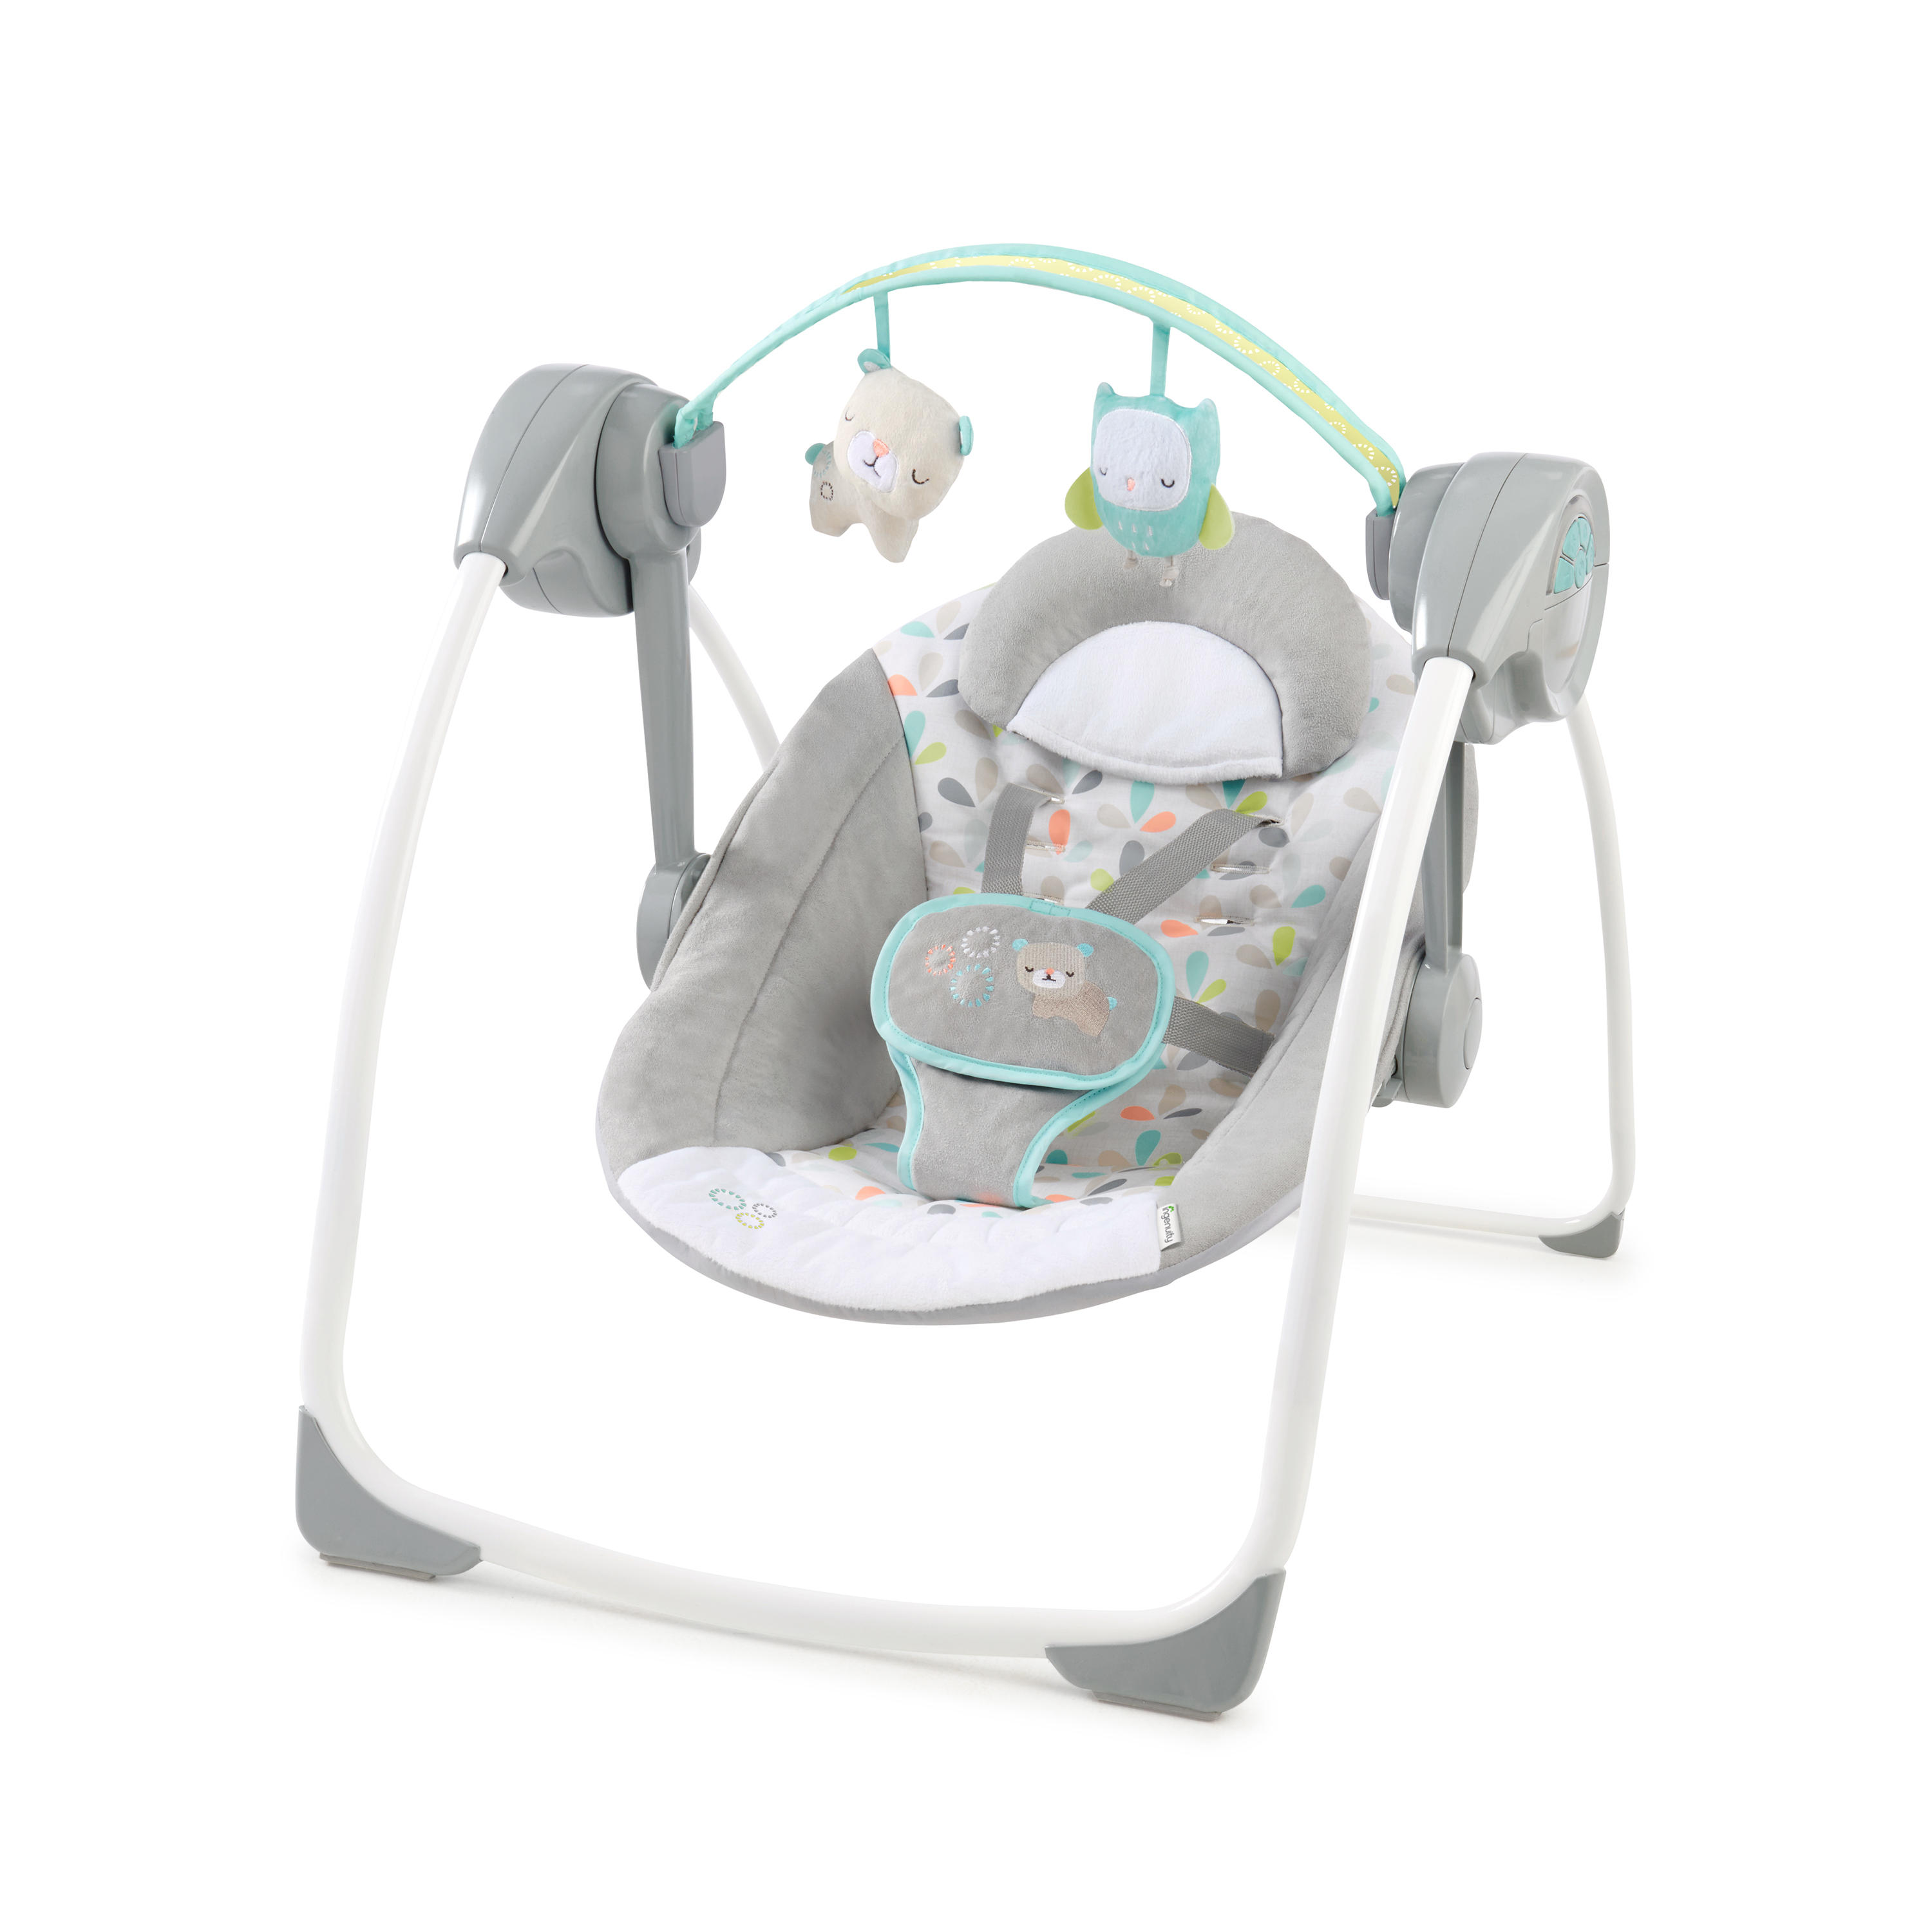 Comfort 2 Go Portable Swing™ - Fanciful Forest™